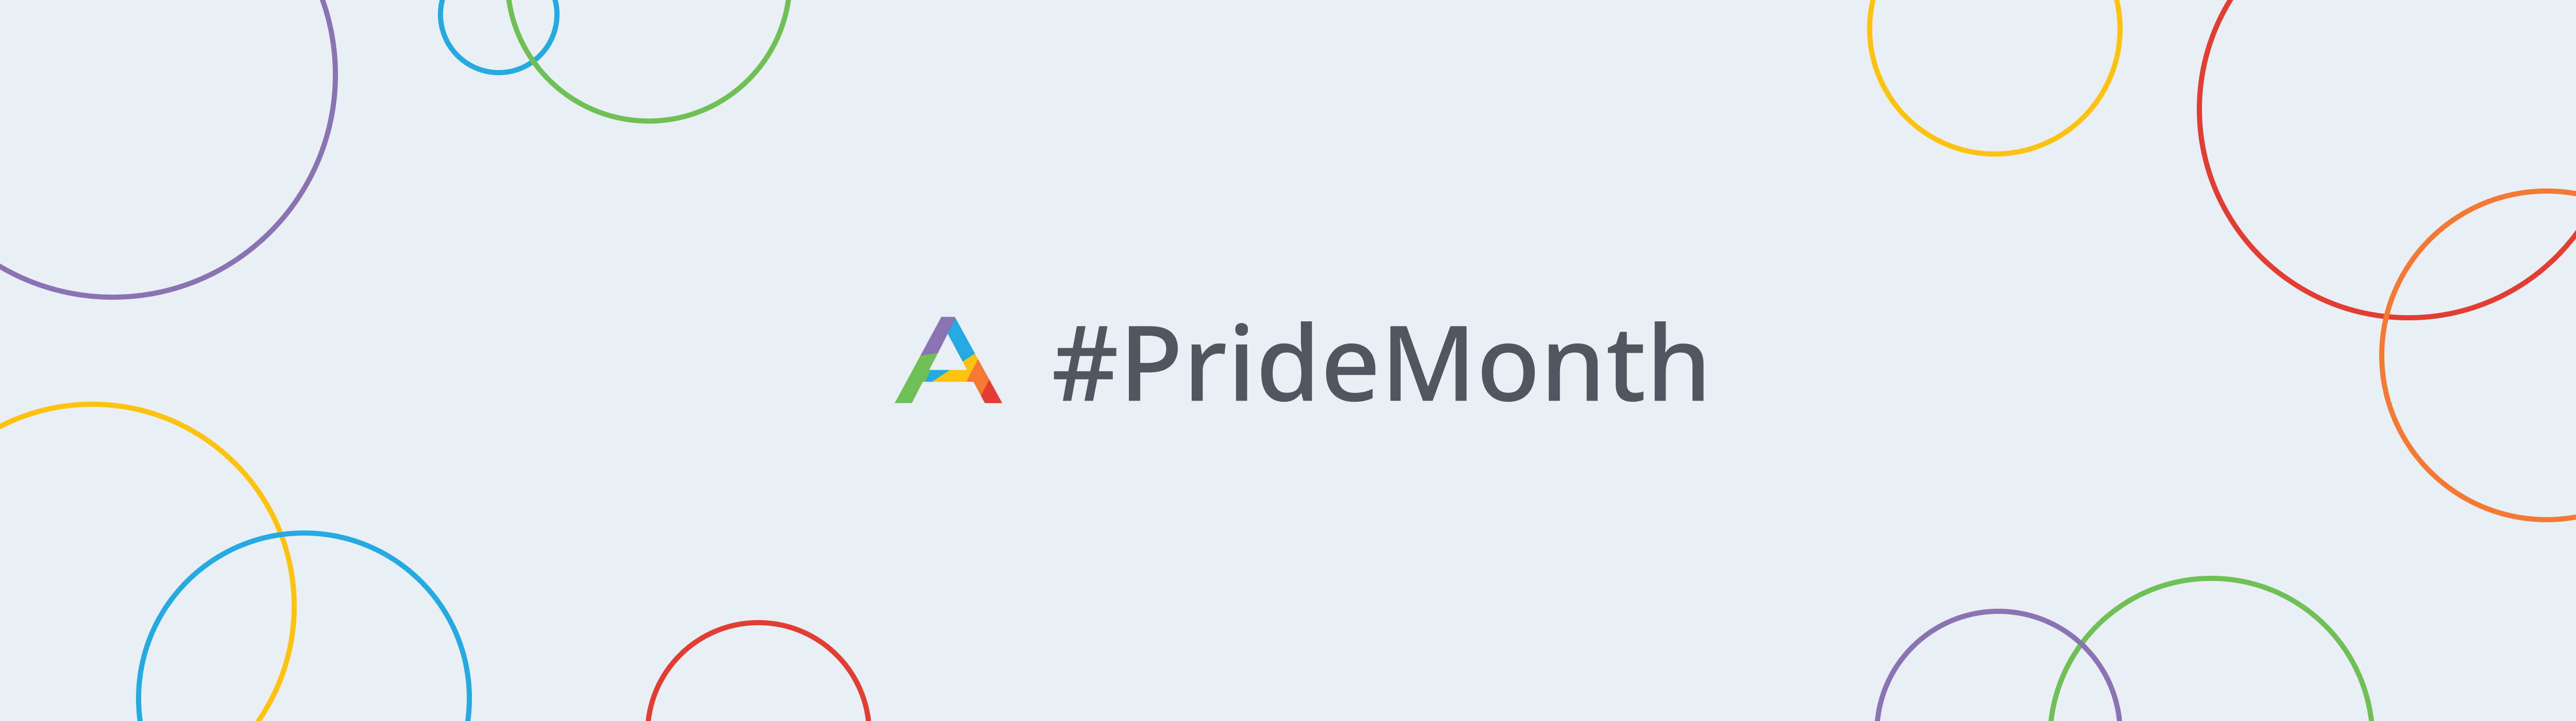 Celebrating Pride Month: Perspectives on Identity, Diversity, Communication, and Change